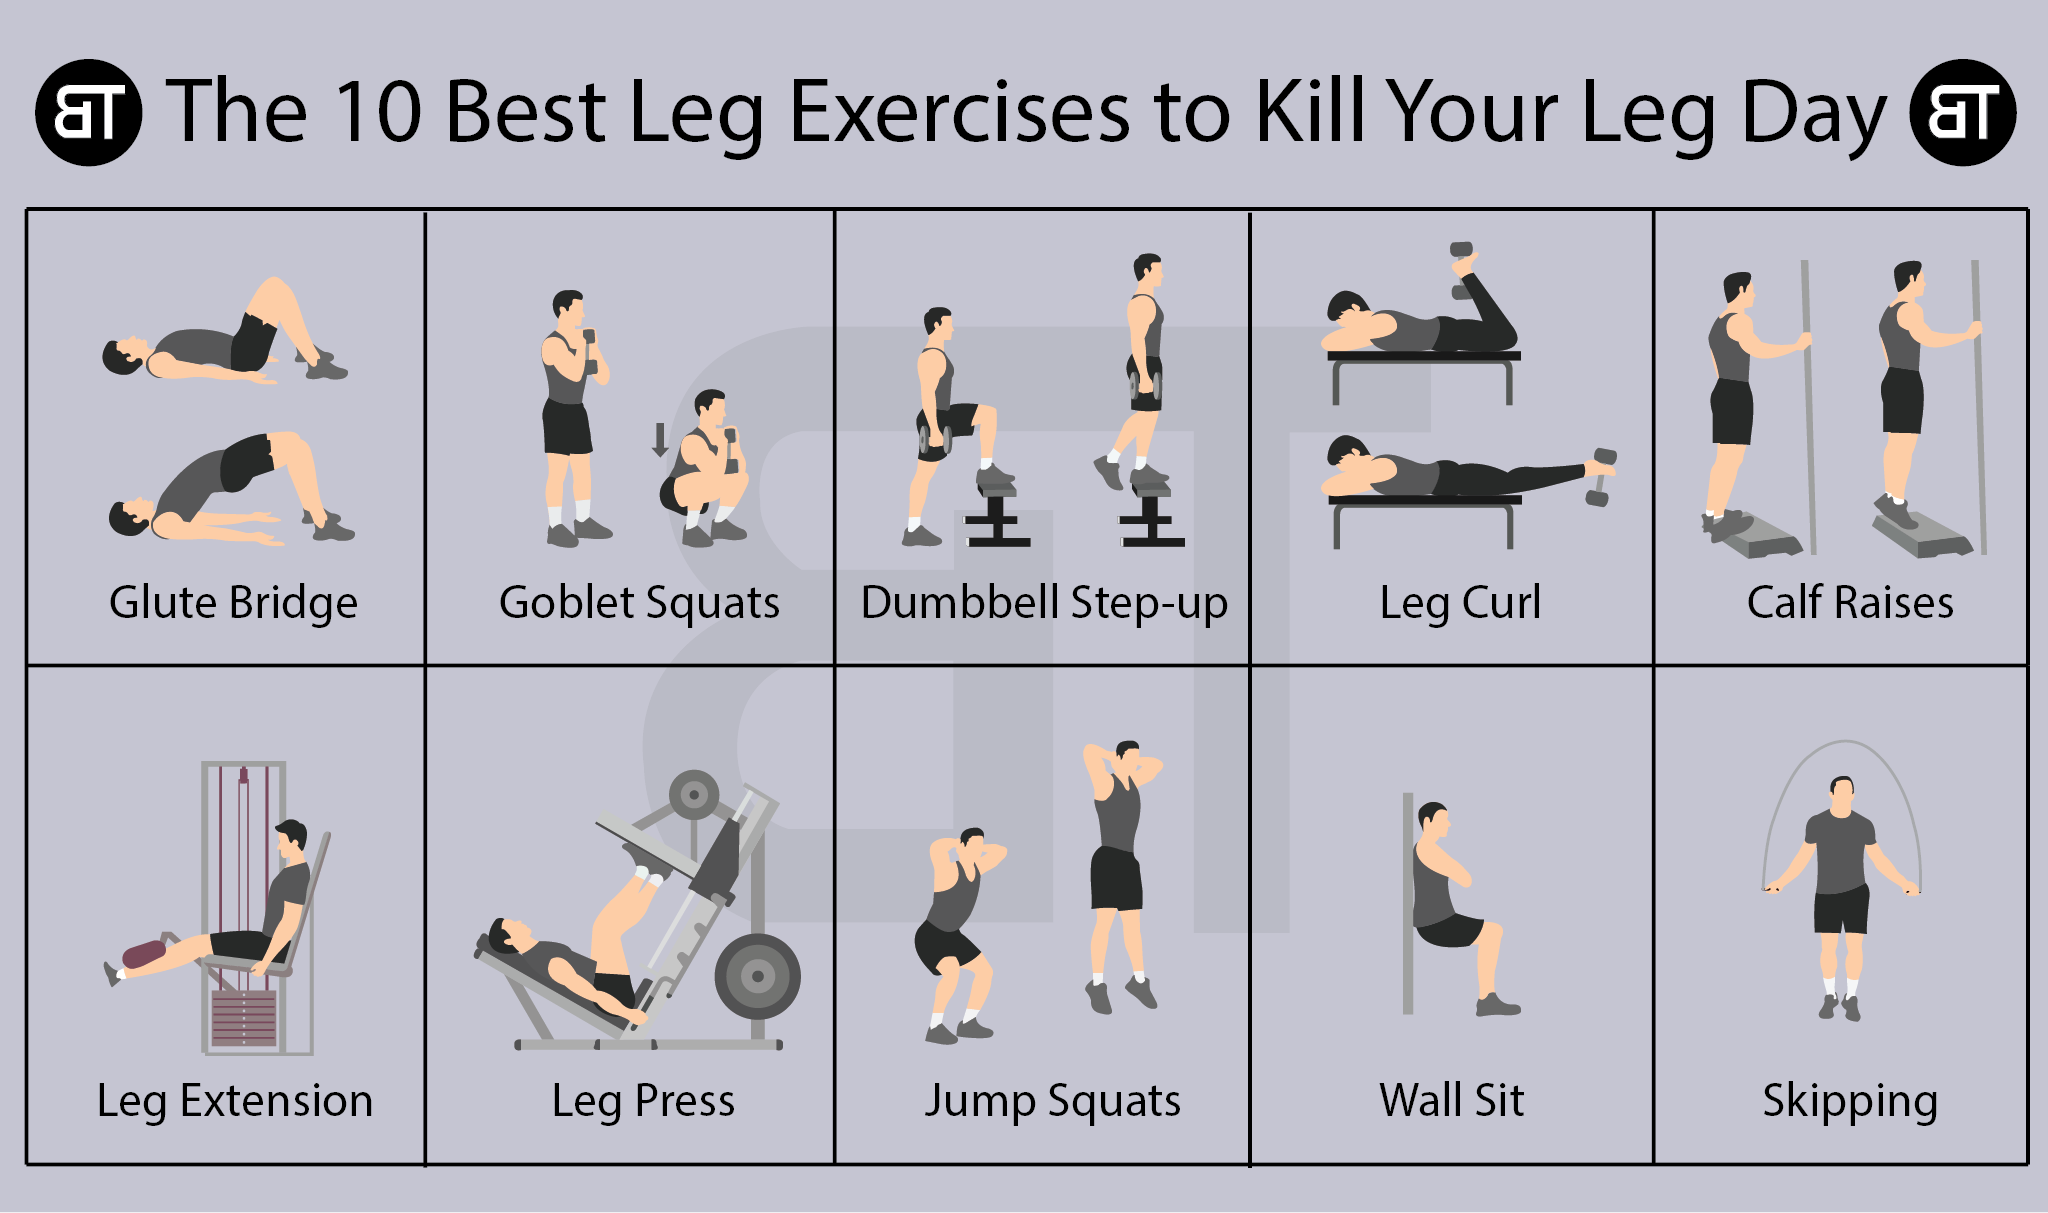 The 10 Best Leg Exercises to Kill Your Leg Day